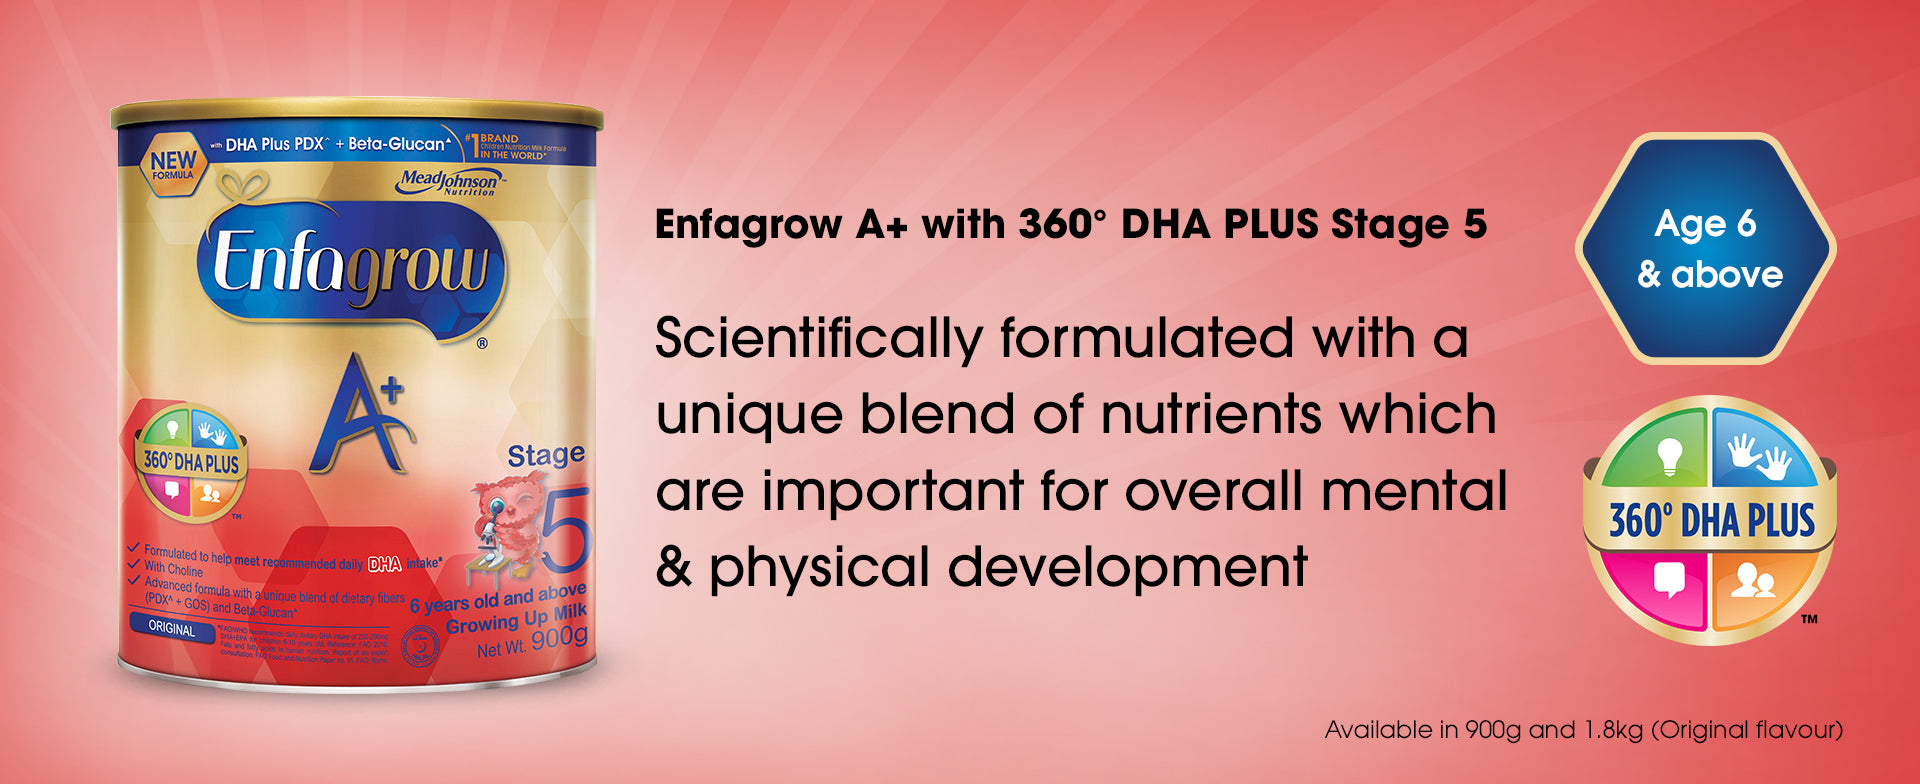 Enfagrow A+ with 360 degrees DHA PLUS Stage 5 - a product banner image with basic information